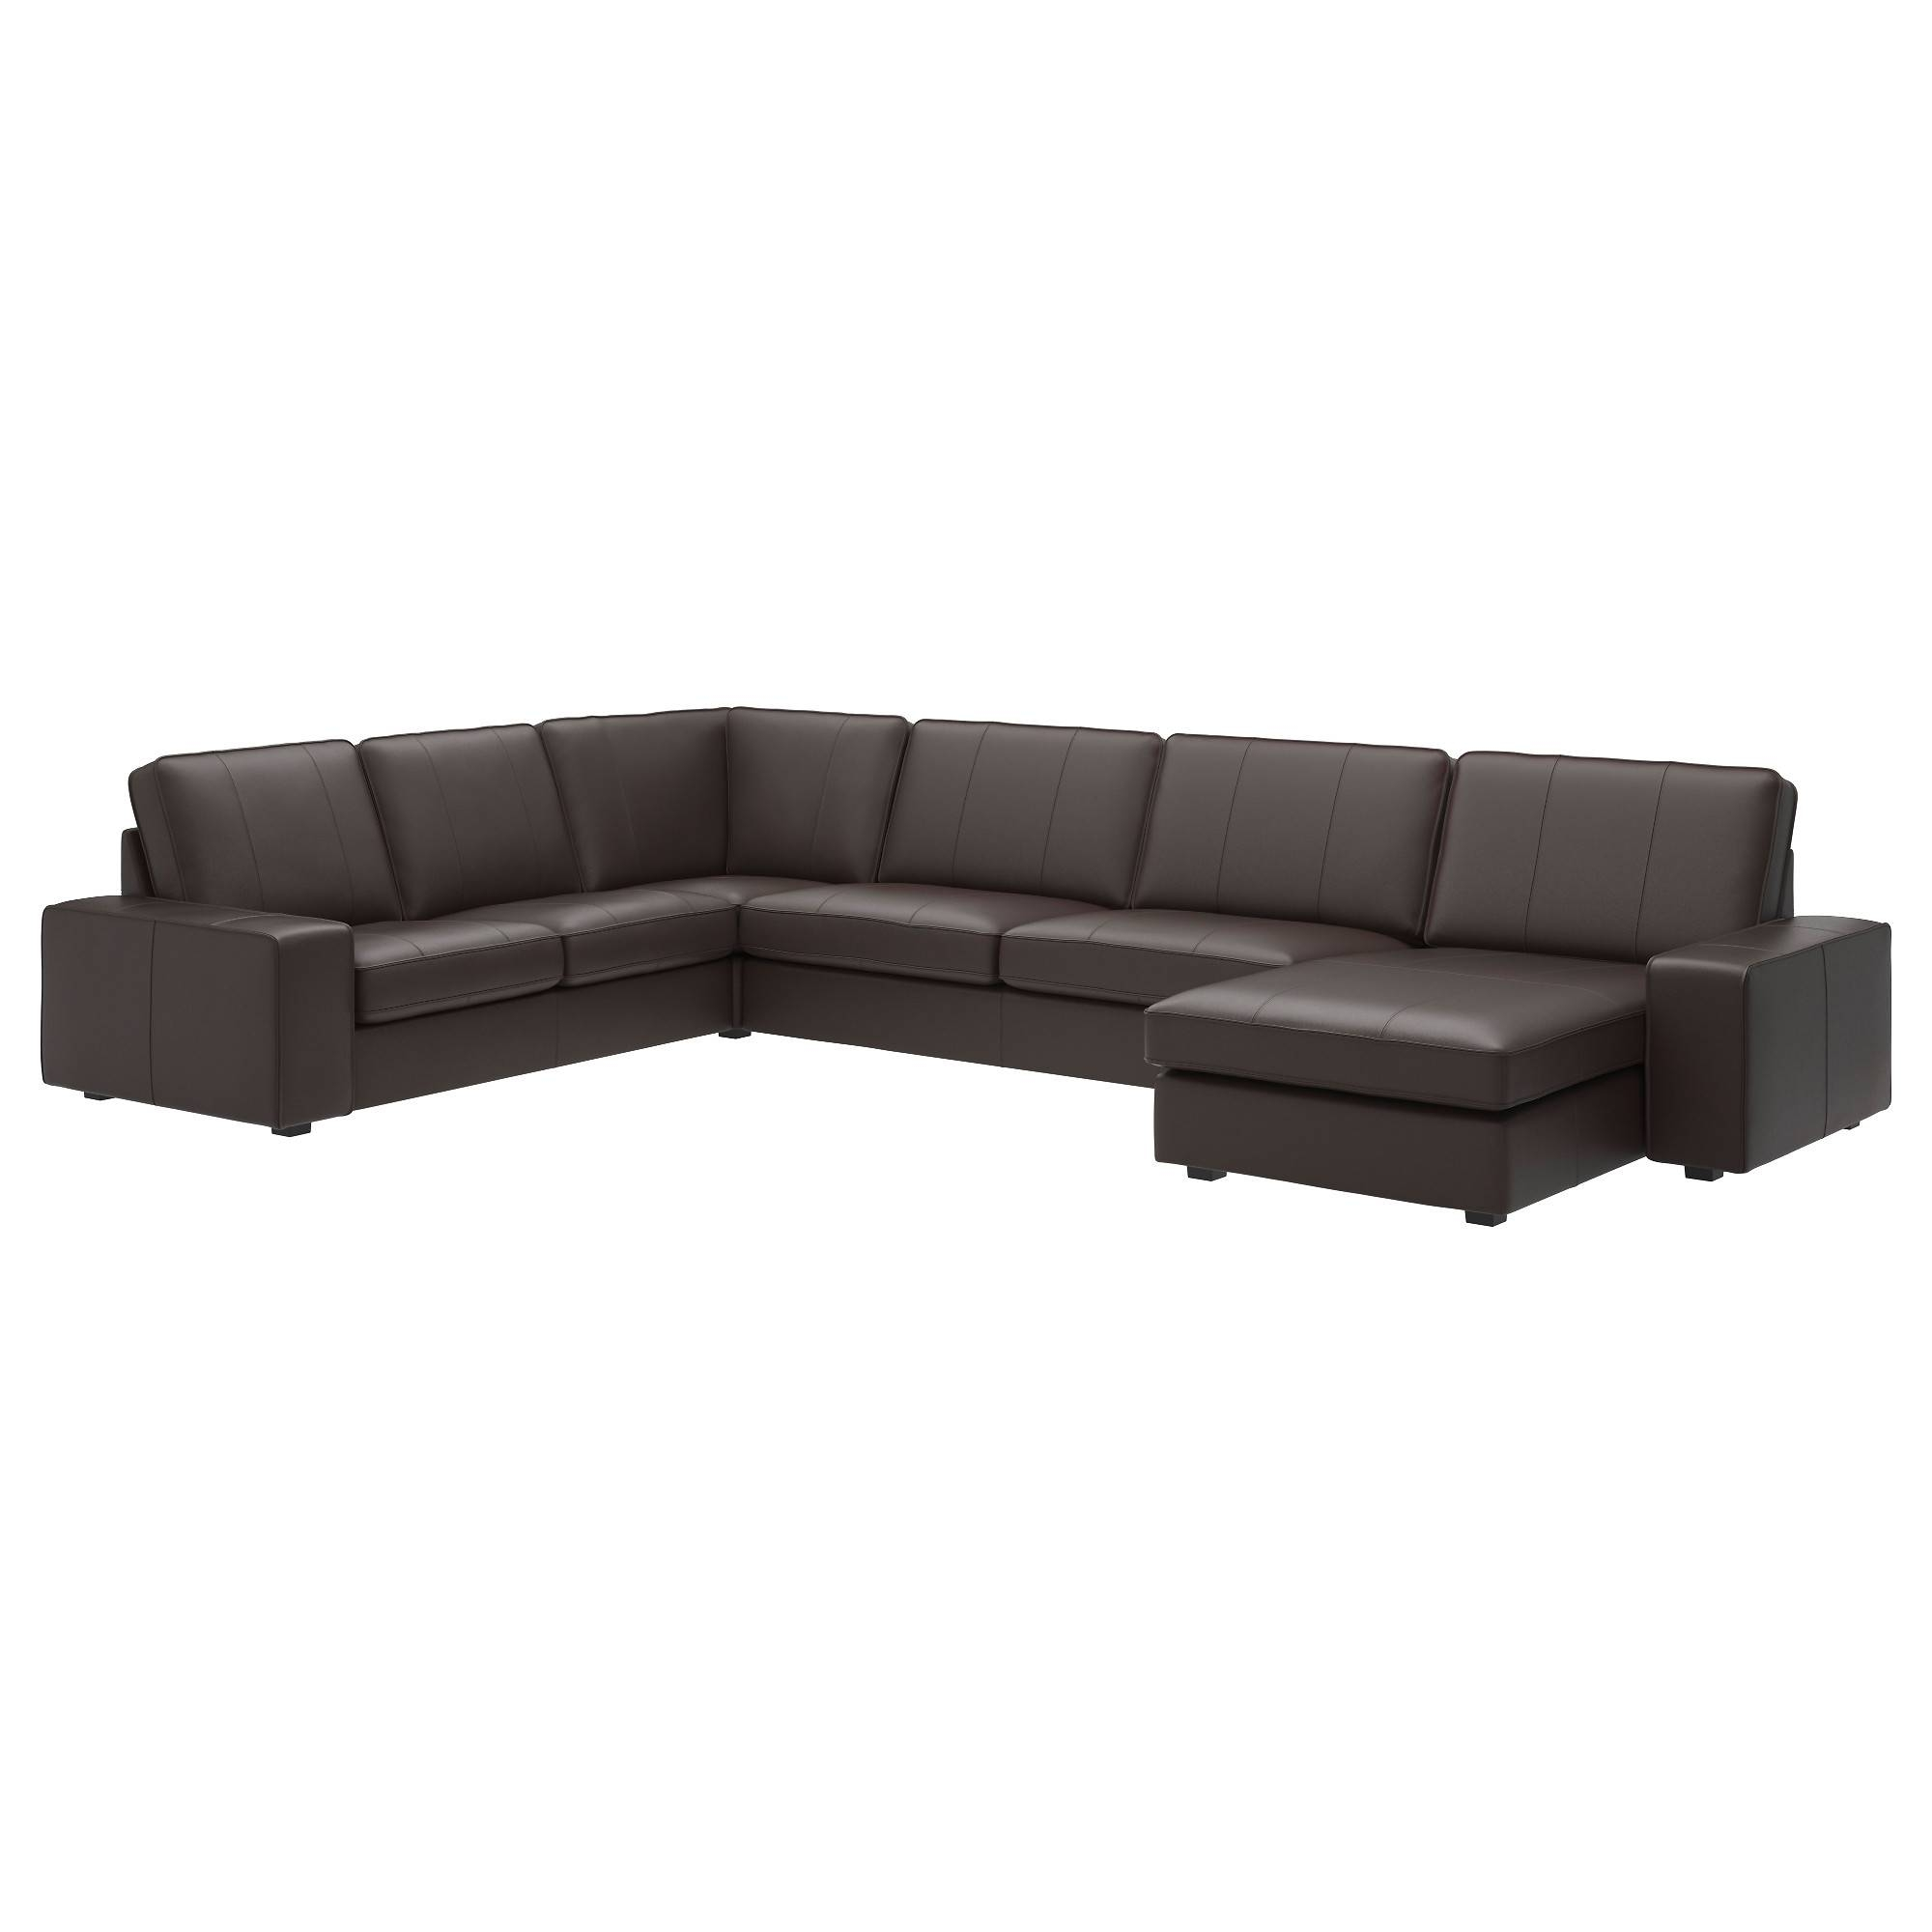 Leather & Faux Leather Couches, Chairs & Ottomans - Ikea within White Leather Sofas (Image 10 of 30)